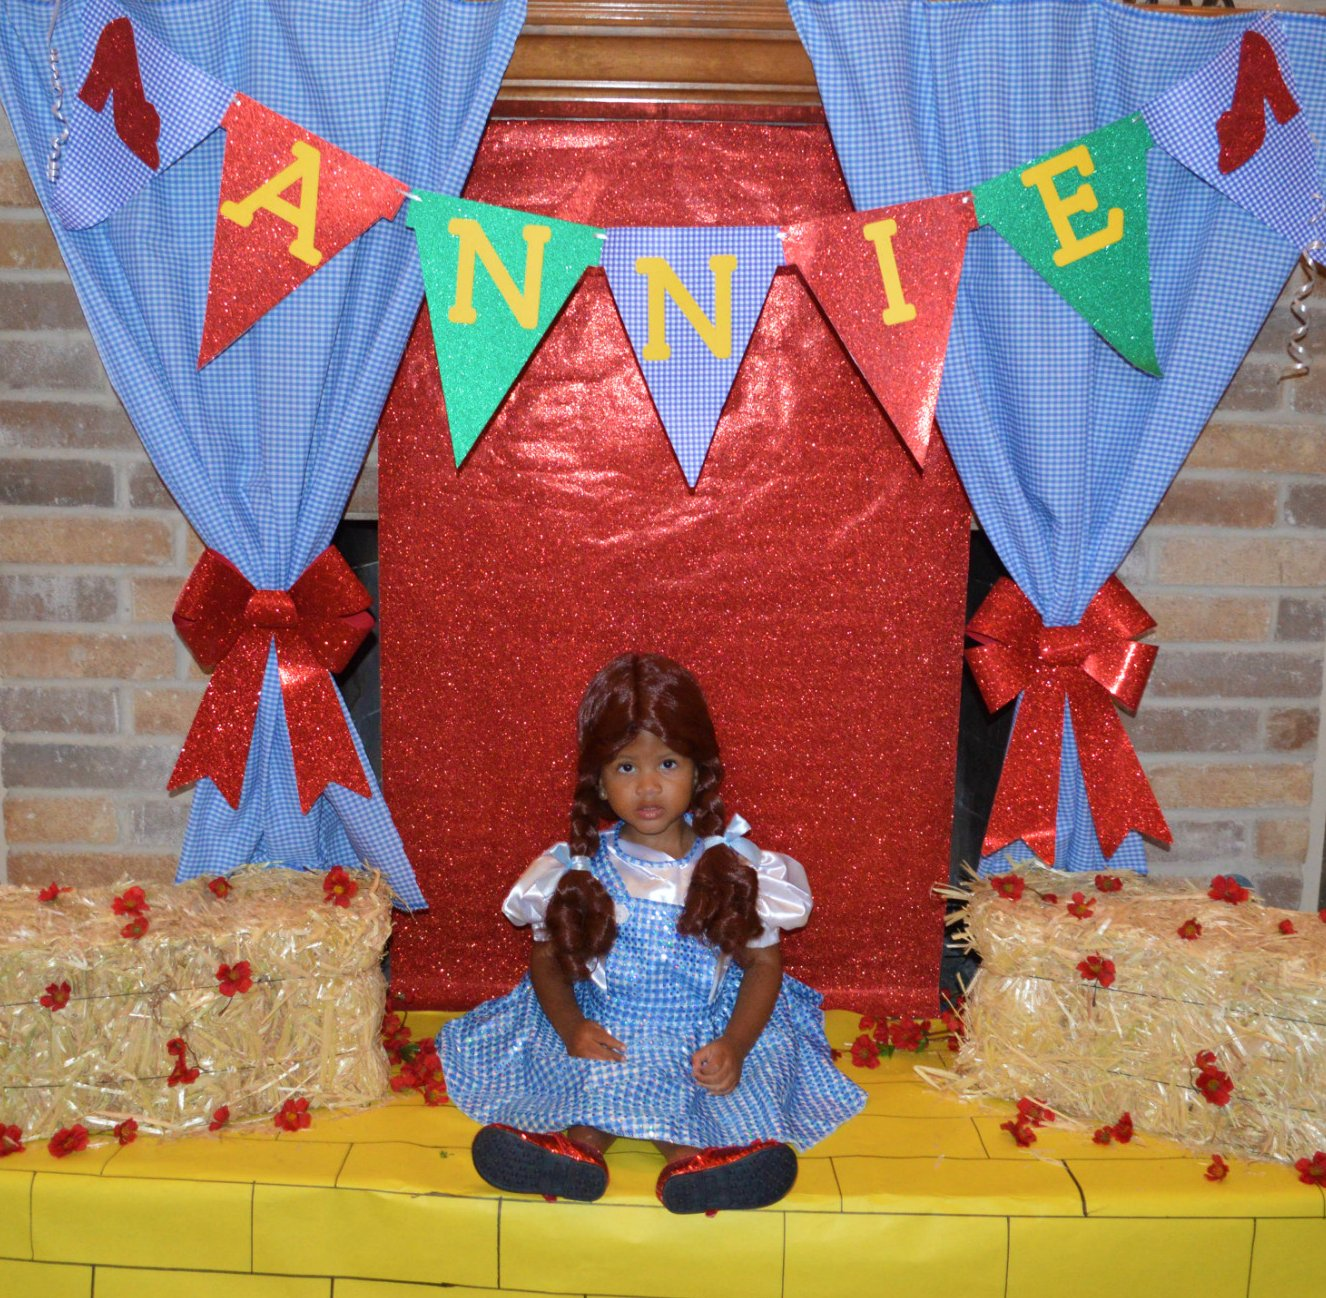 Wizard Of Oz Party Decorations Snowflakes And Starfish Wizard Of Oz Party Food And Decor